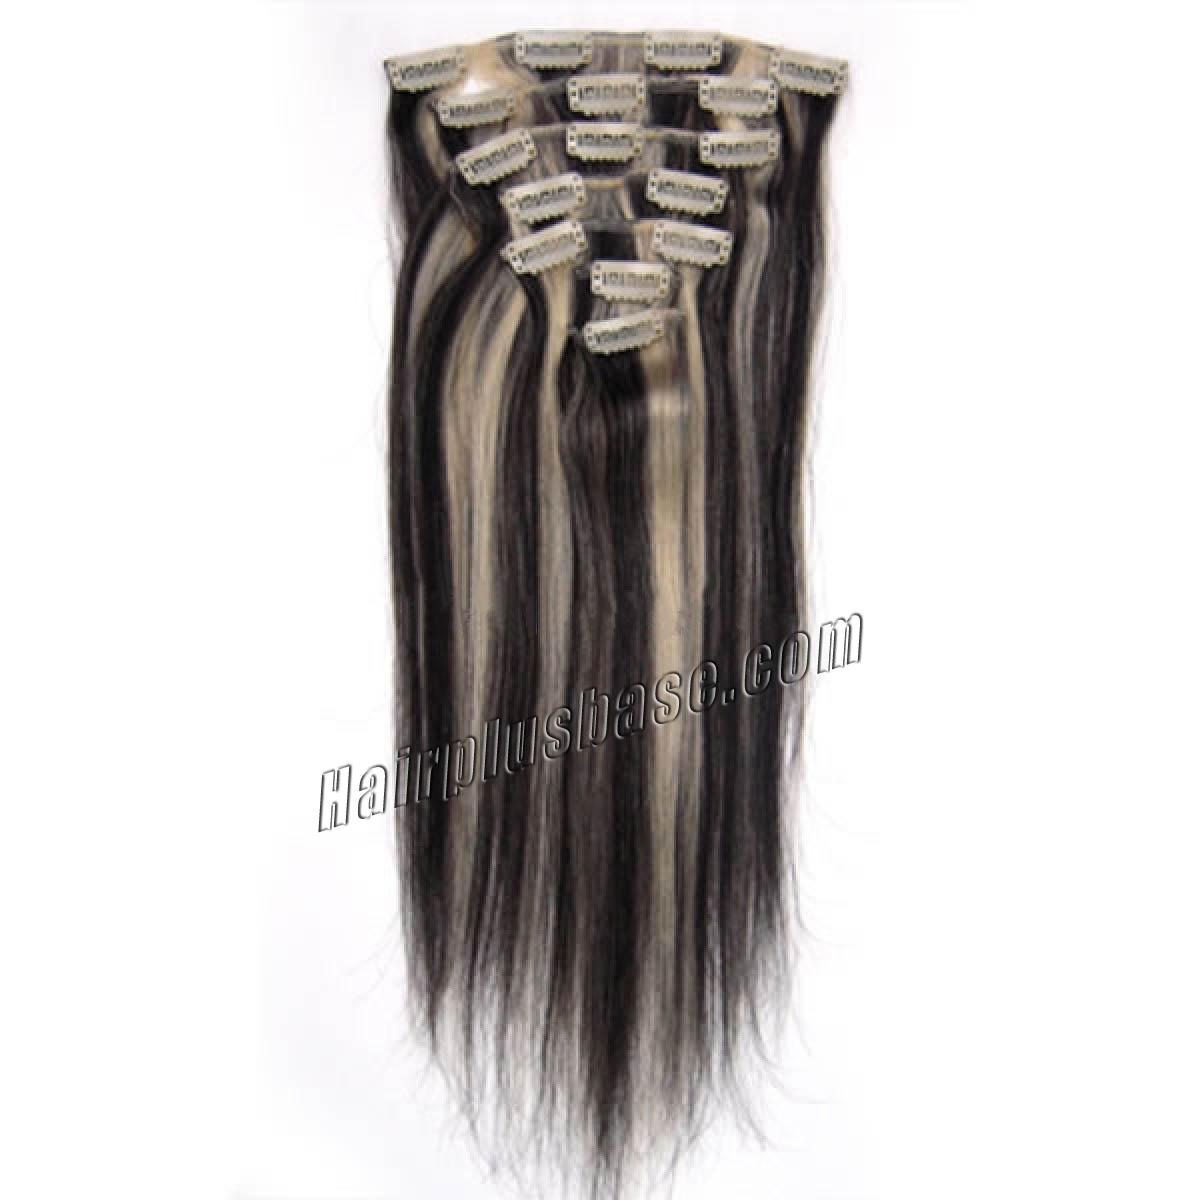 22 inch 1b613 clip in human hair extensions 10pcs